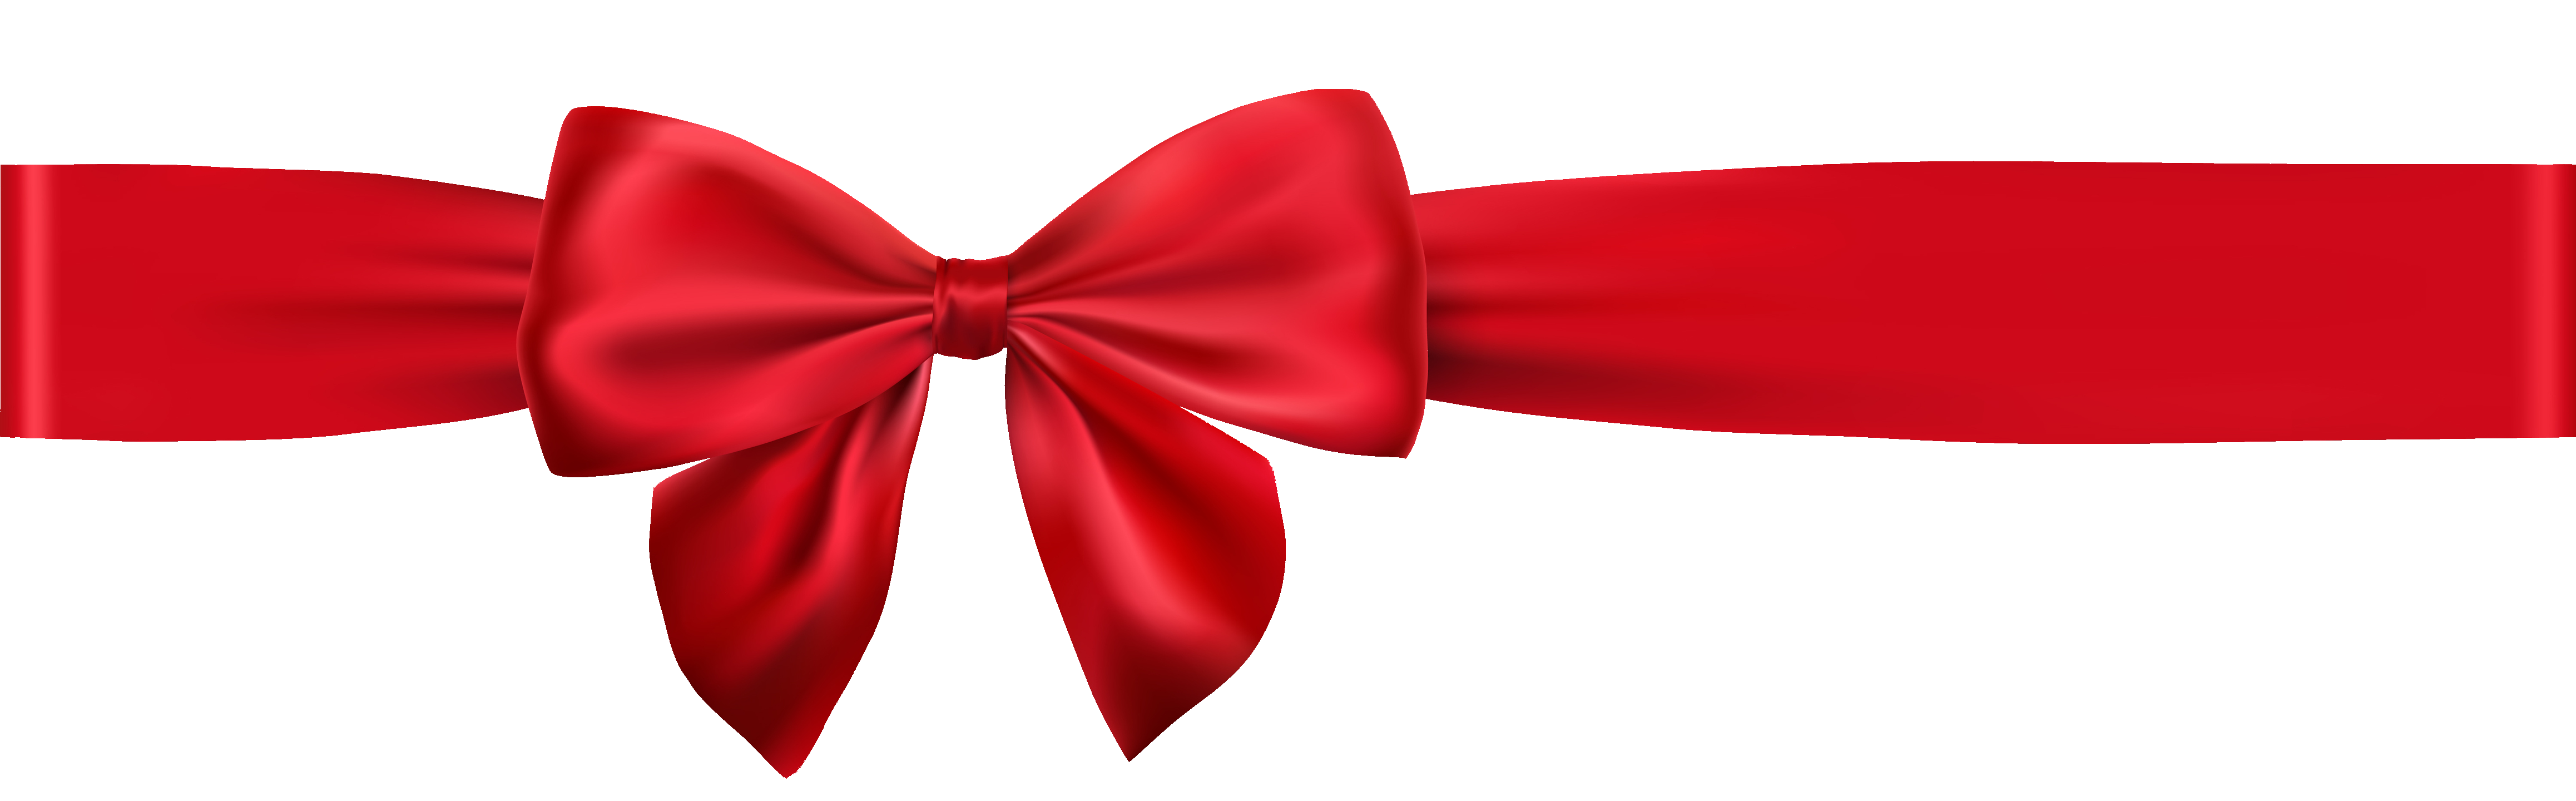 Red Holiday Bow